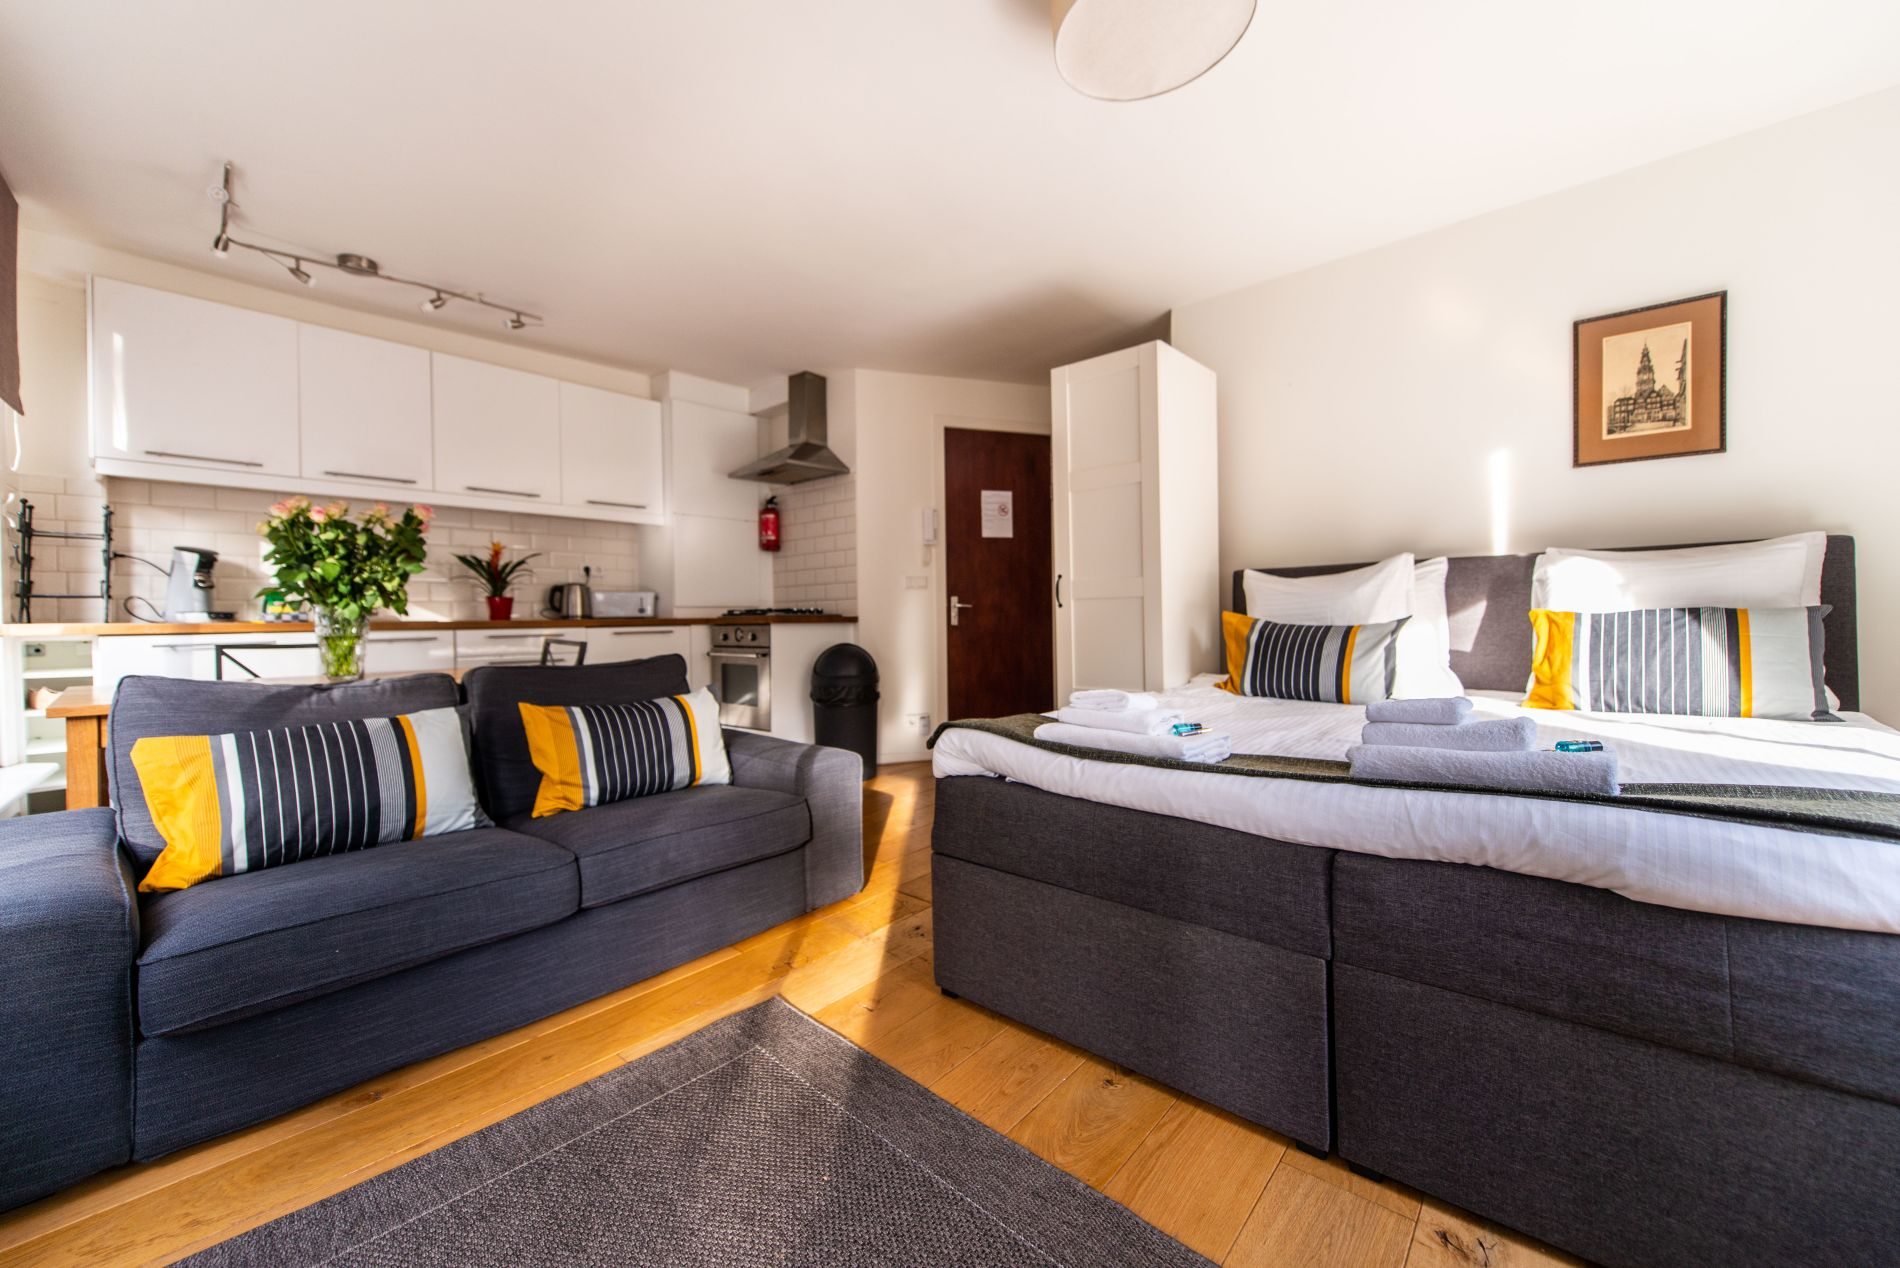 Serviced apartment for rent in Amsterdam's Canal District